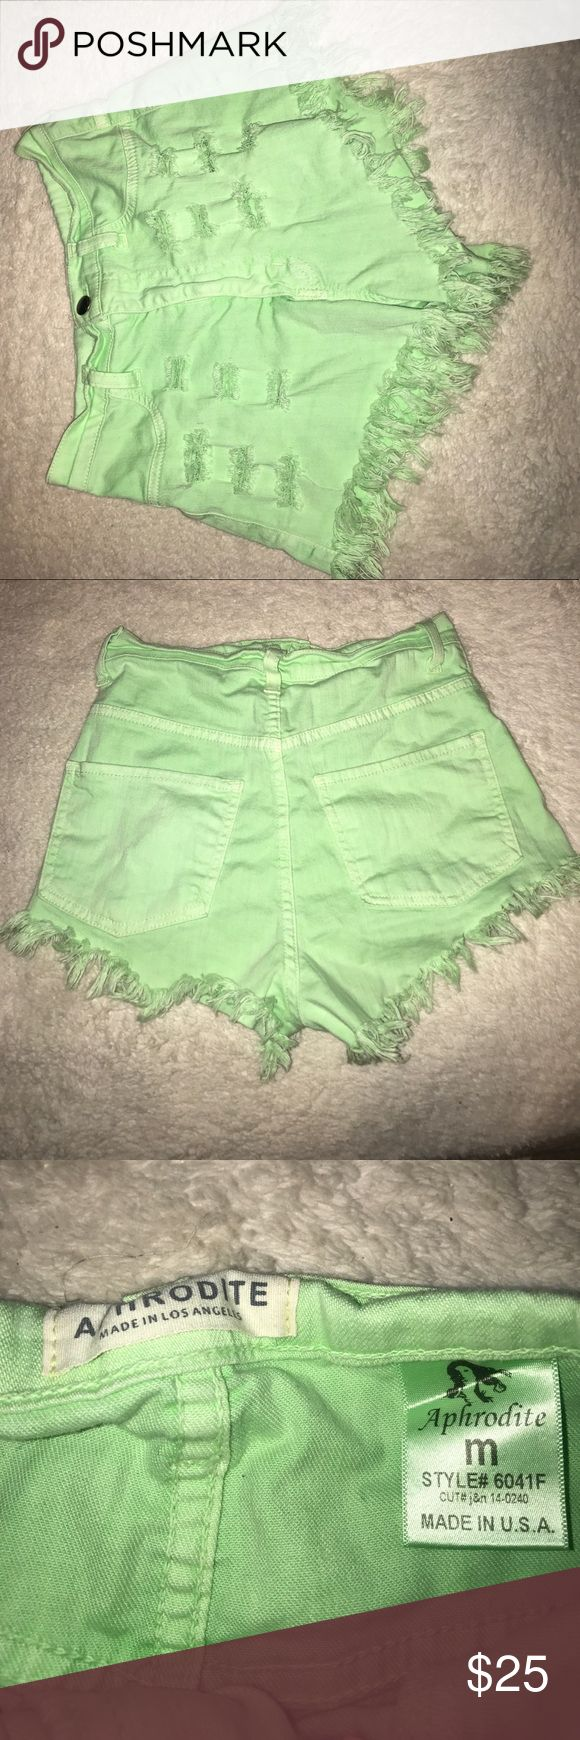 Neon Green Shorts Never Worn! Aphrodite Shorts Jean Shorts